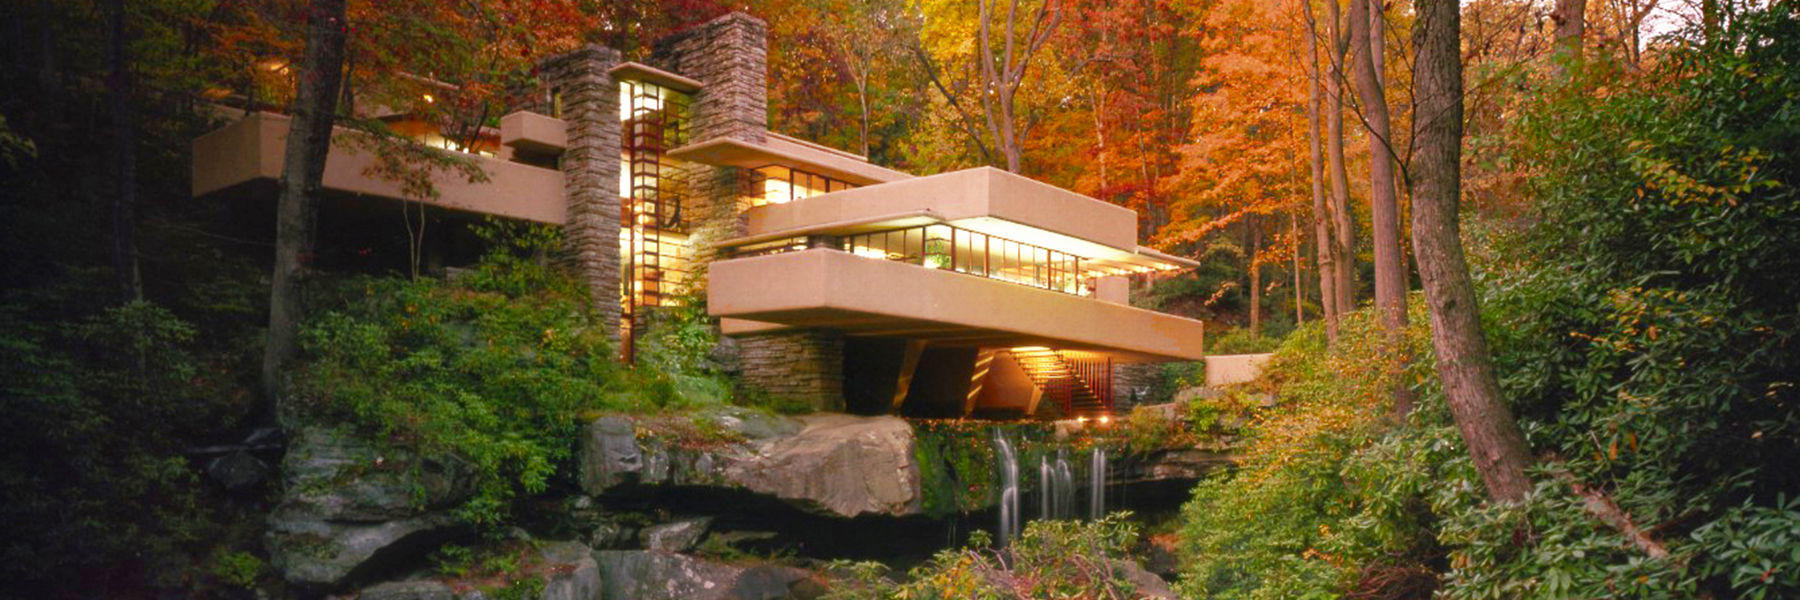 laurel highlands pa frank lloyd wright fallingwater tours. Black Bedroom Furniture Sets. Home Design Ideas